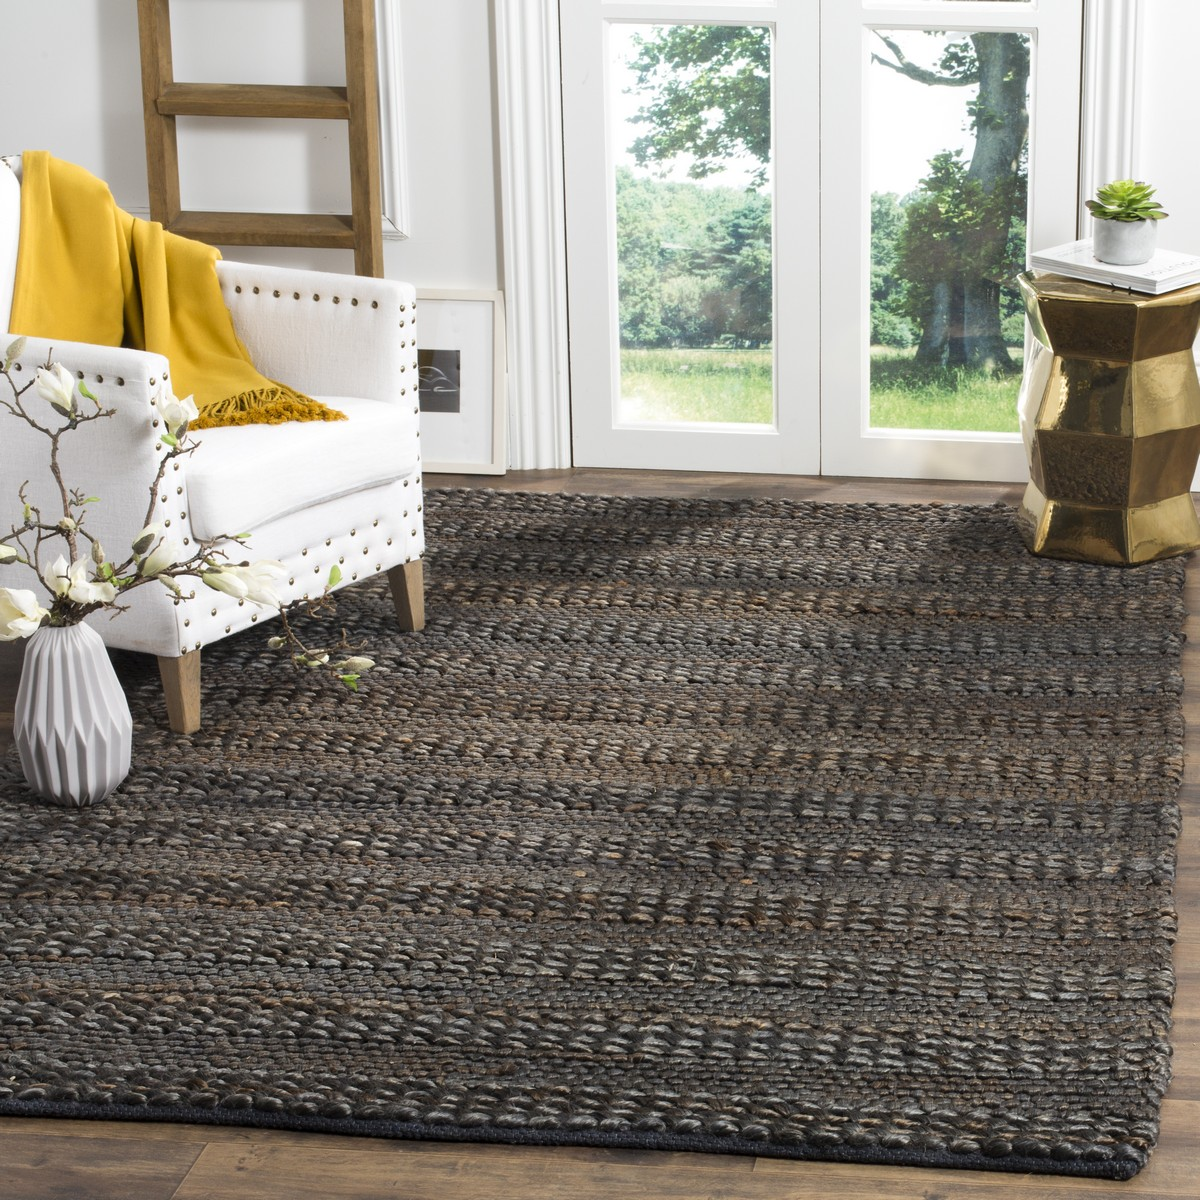 Rug Nf212c Natural Fiber Area Rugs By Safavieh